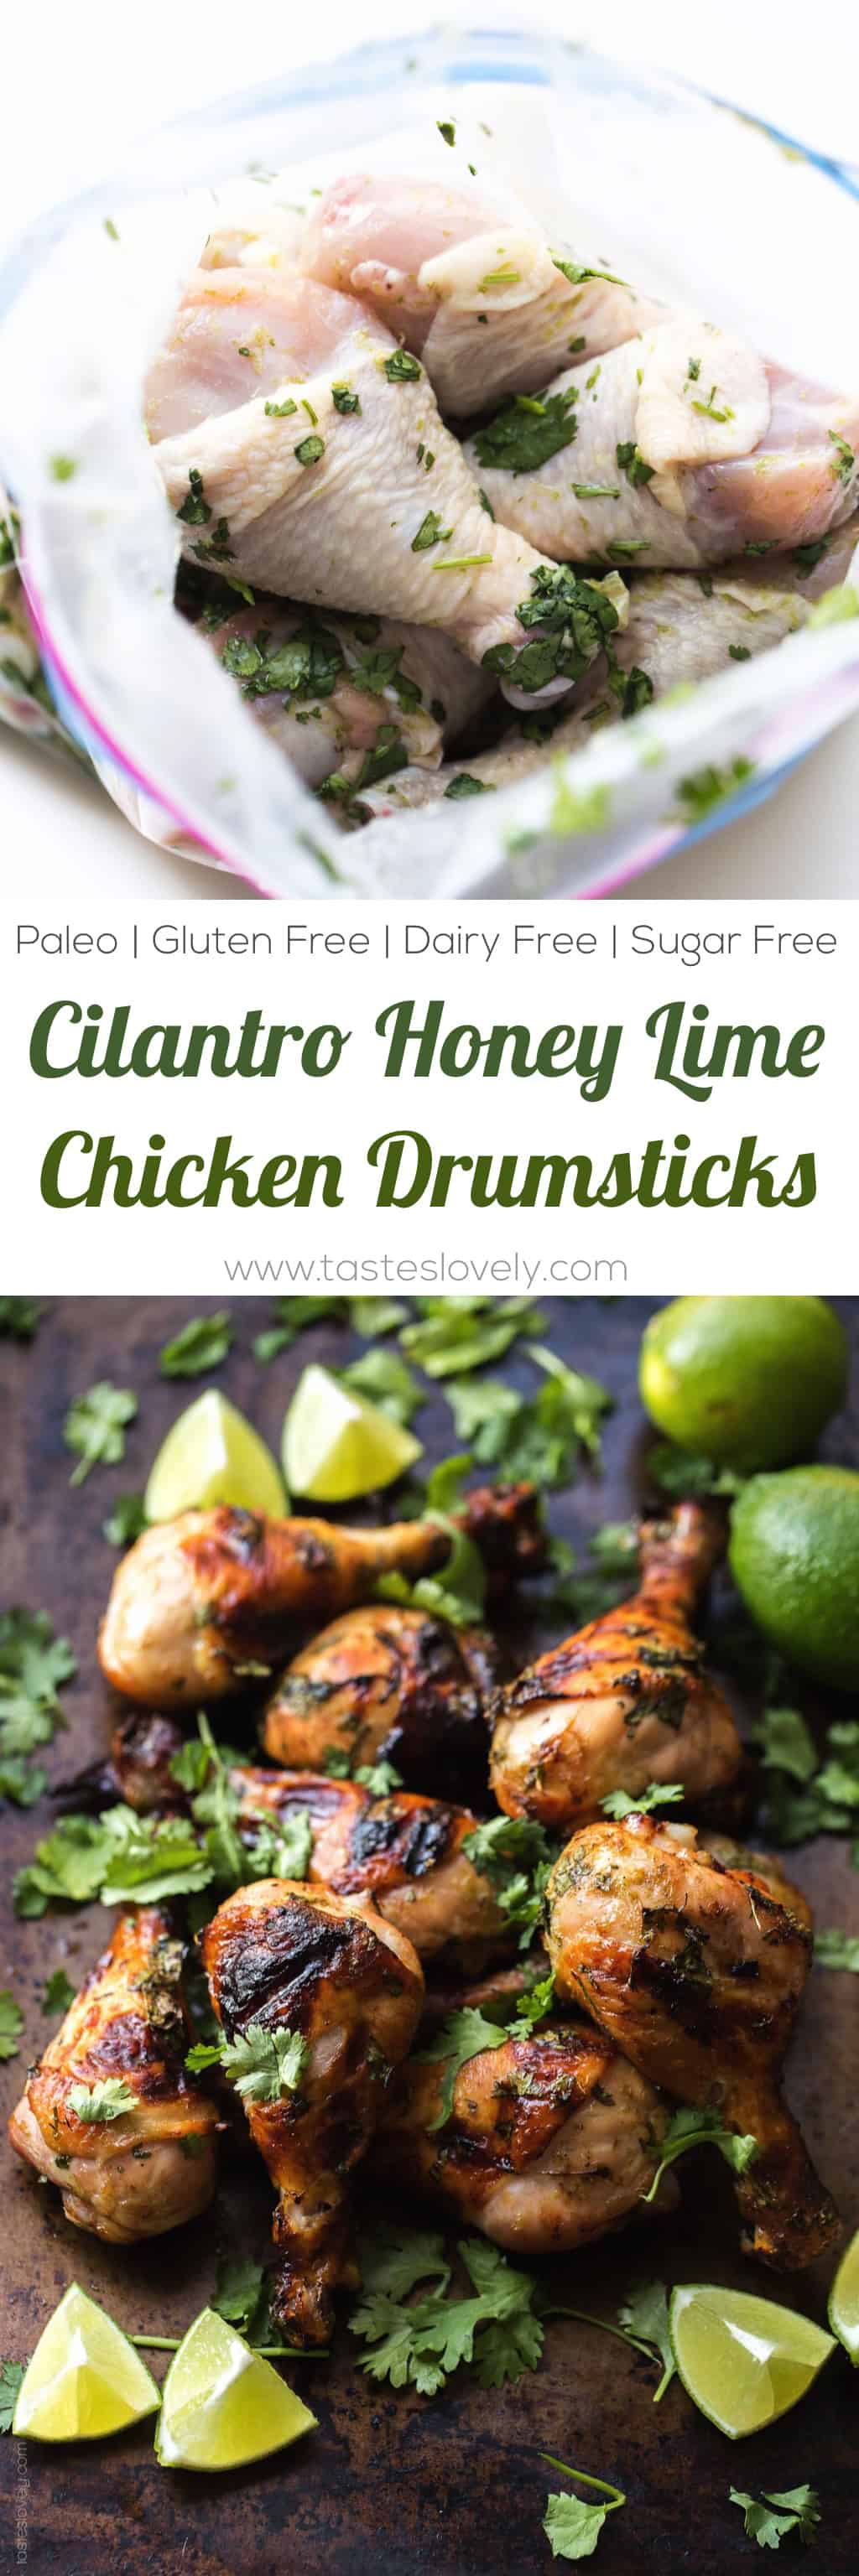 Paleo Cilantro Honey Lime Chicken Drumsticks - a delicious and healthy grilled dinner recipe! Paleo, gluten free, grain free, dairy free, refined sugar free.